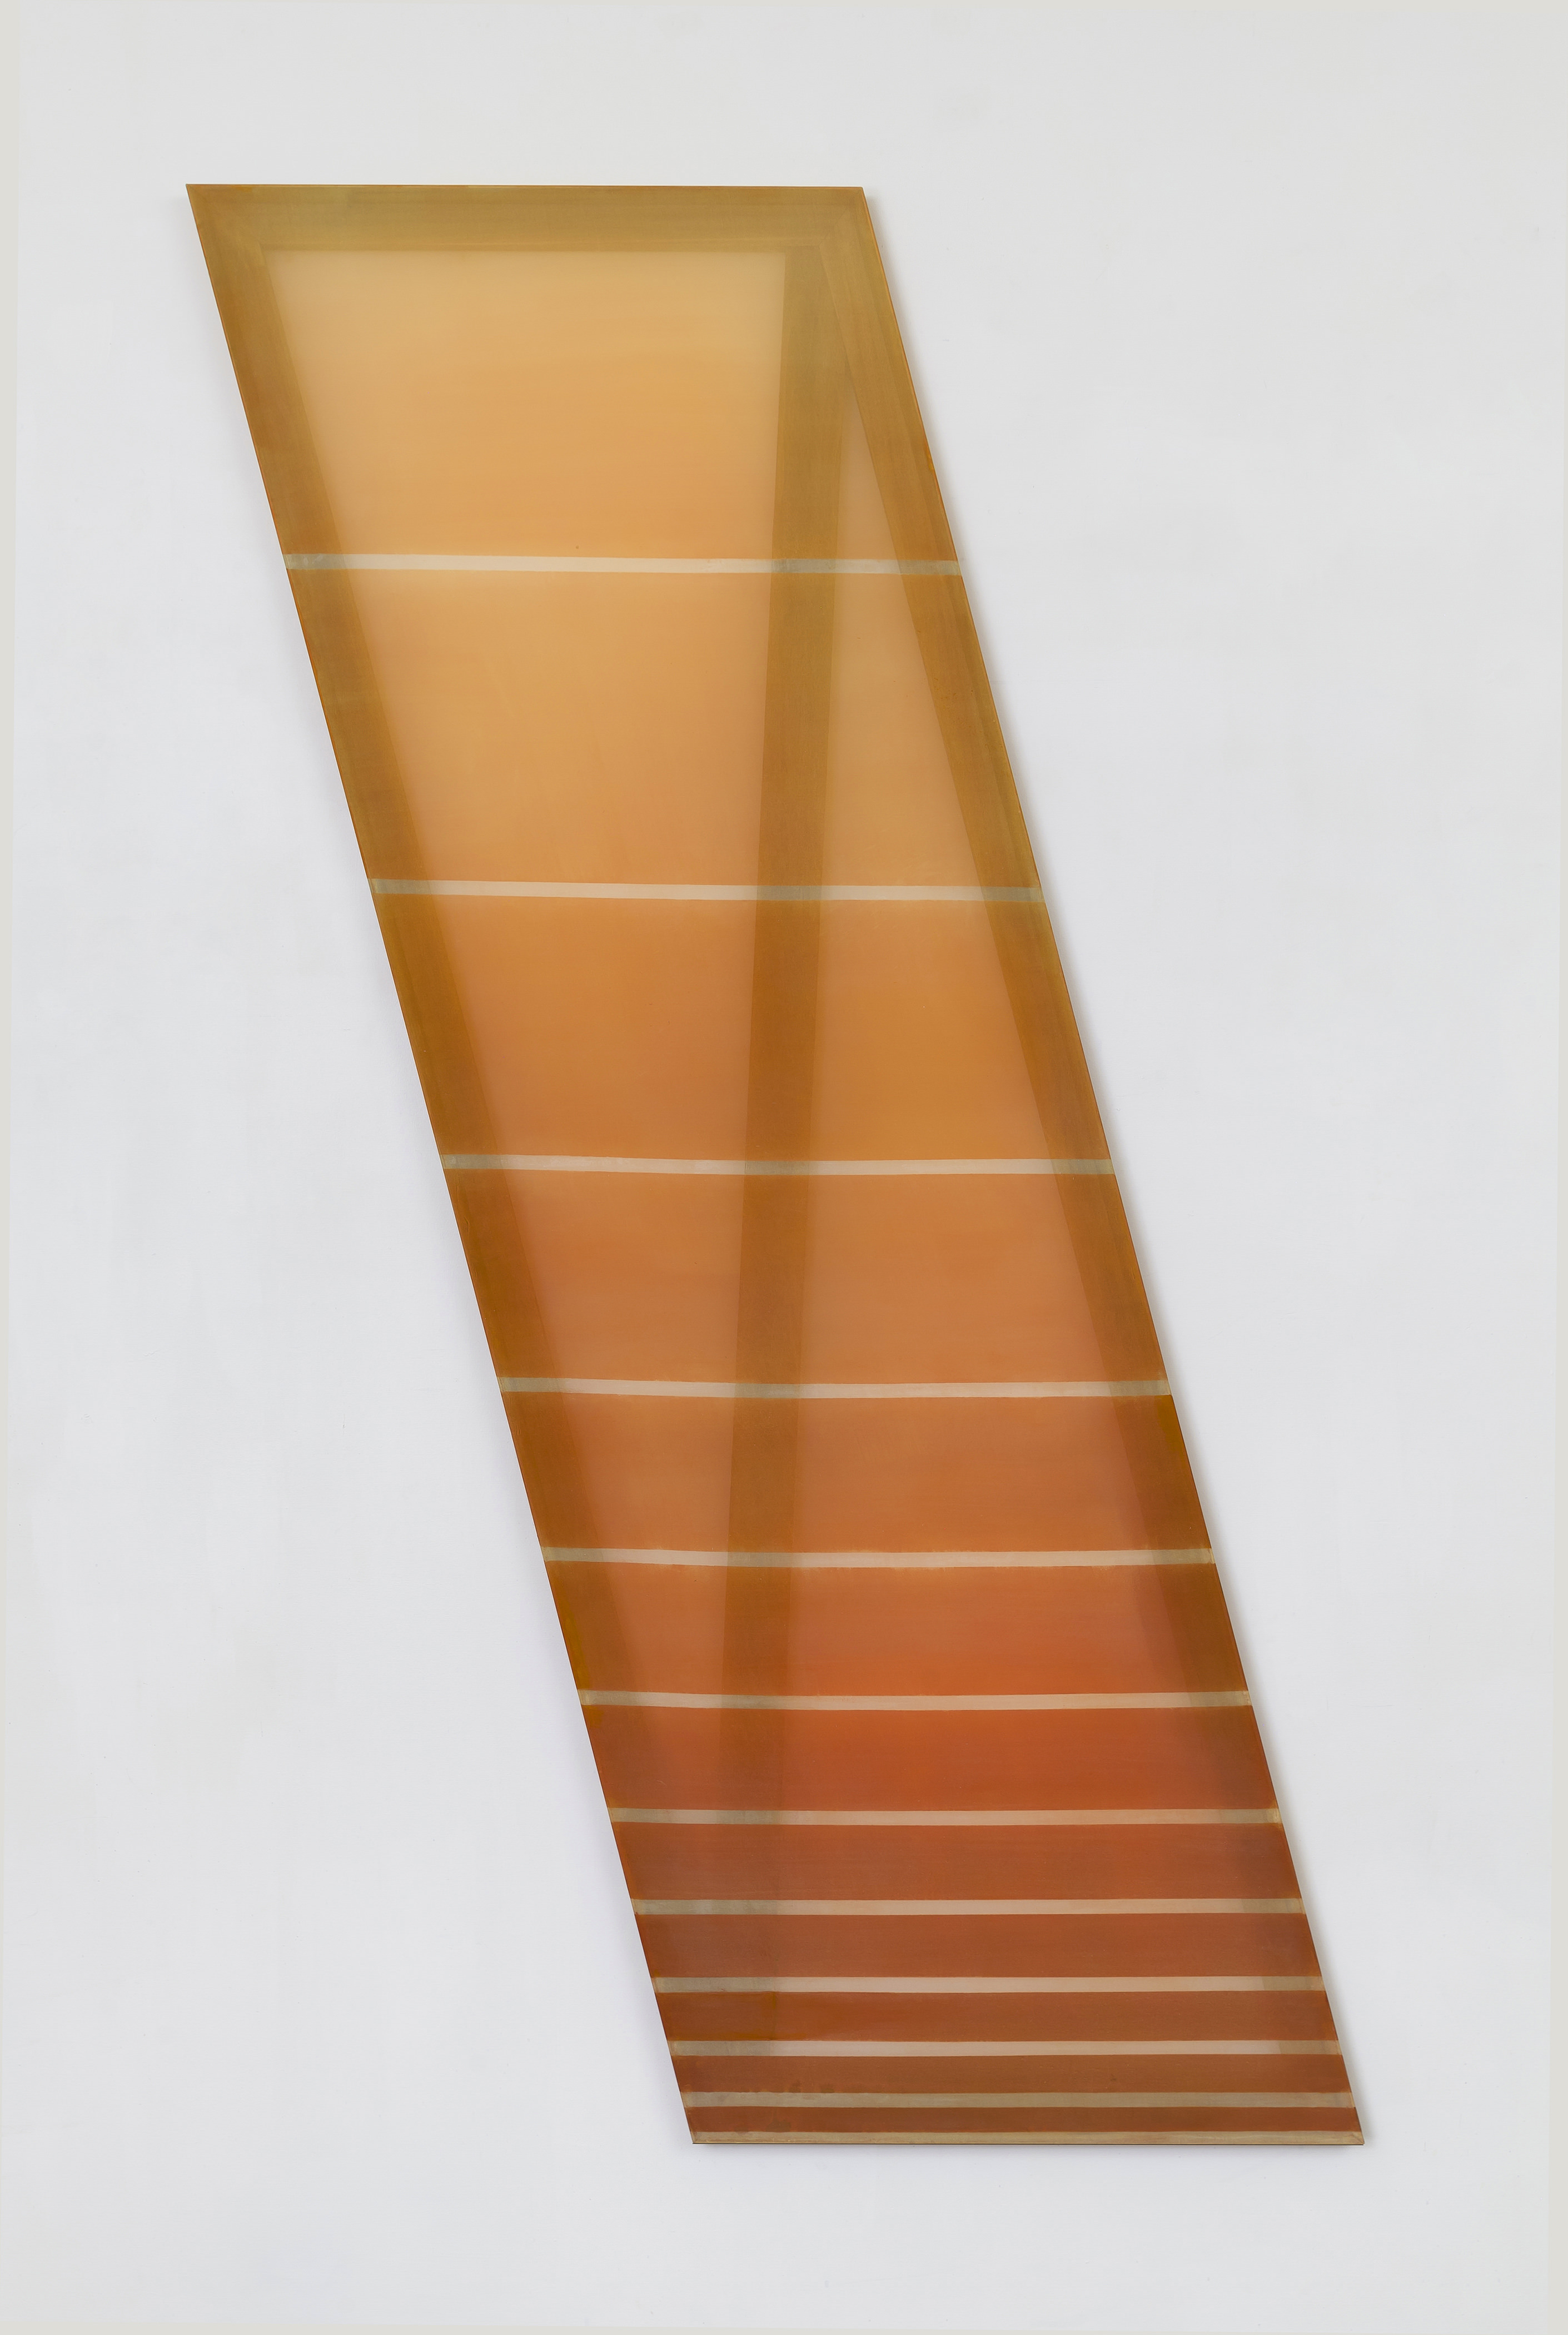 Rebecca Ward,  (sunrise), 2015, dye on silk, 78 x 26 in